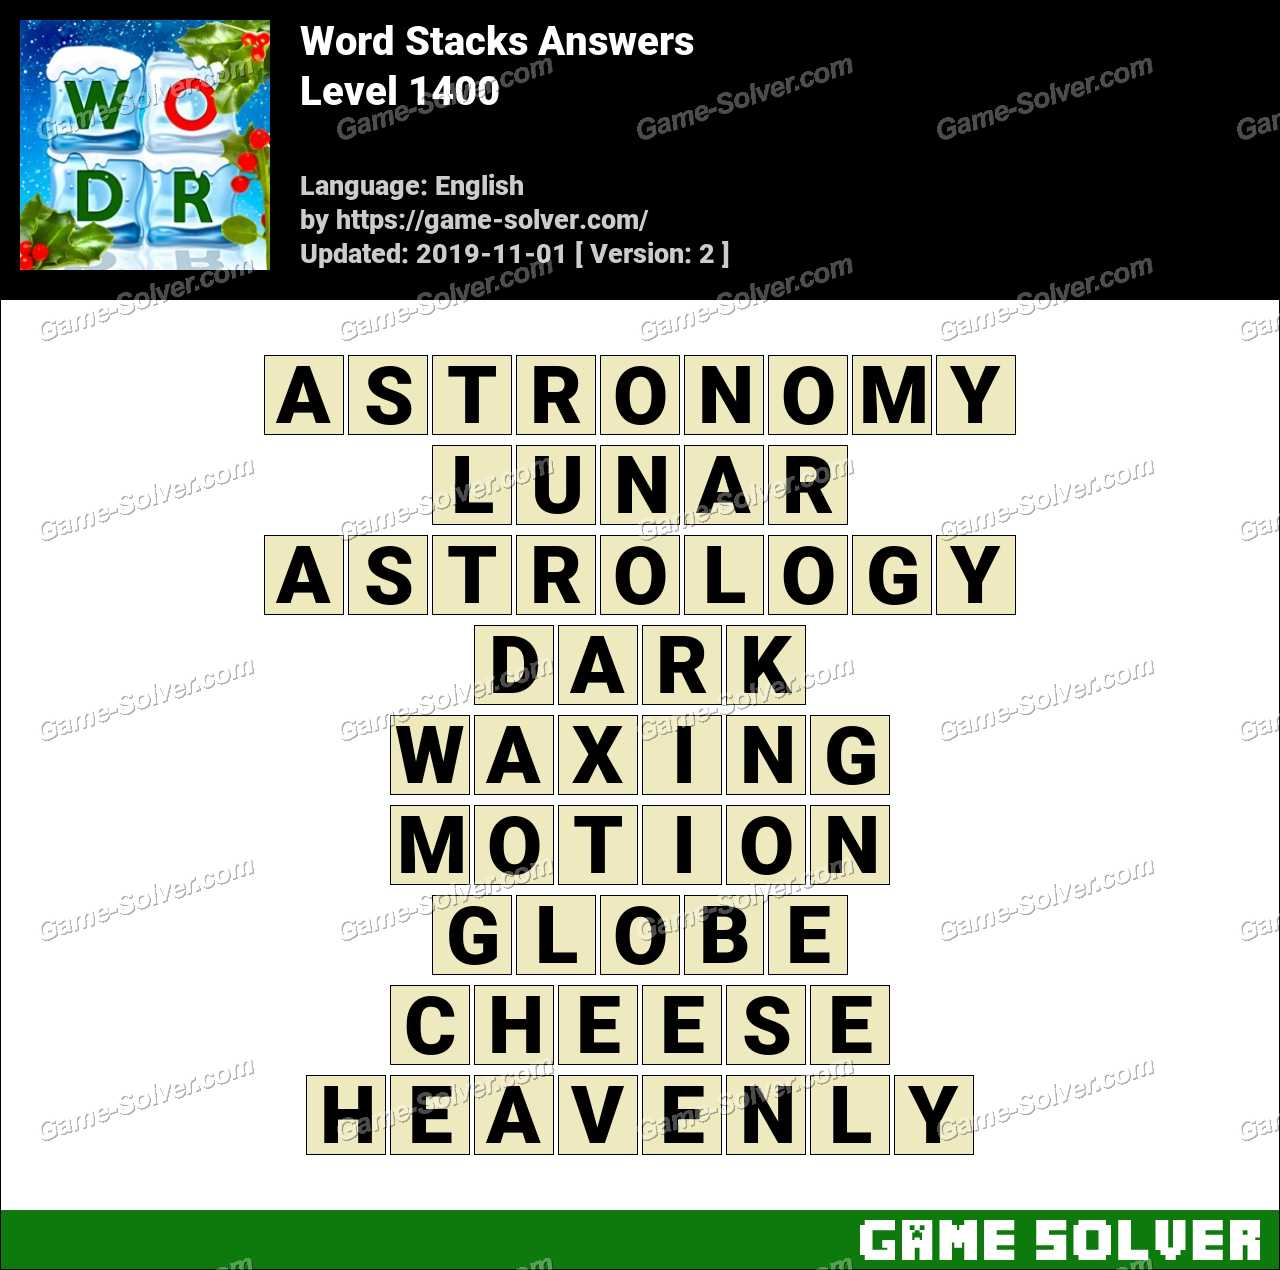 Word Stacks Level 1400 Answers